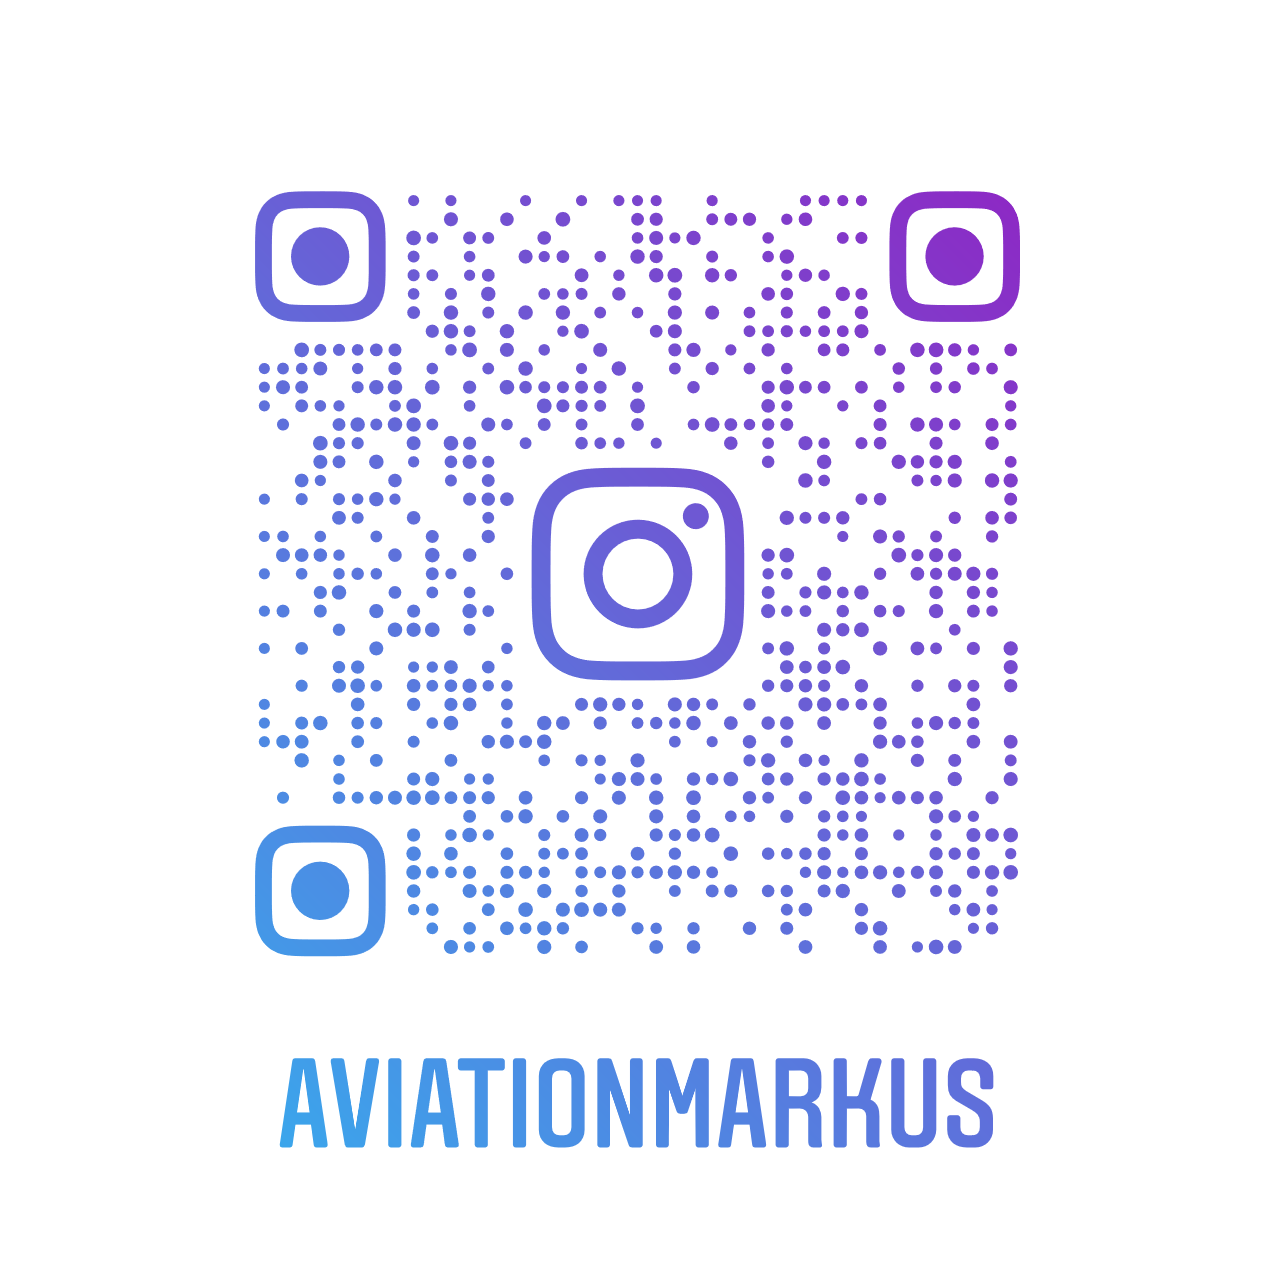 Instagram Aviation Markus